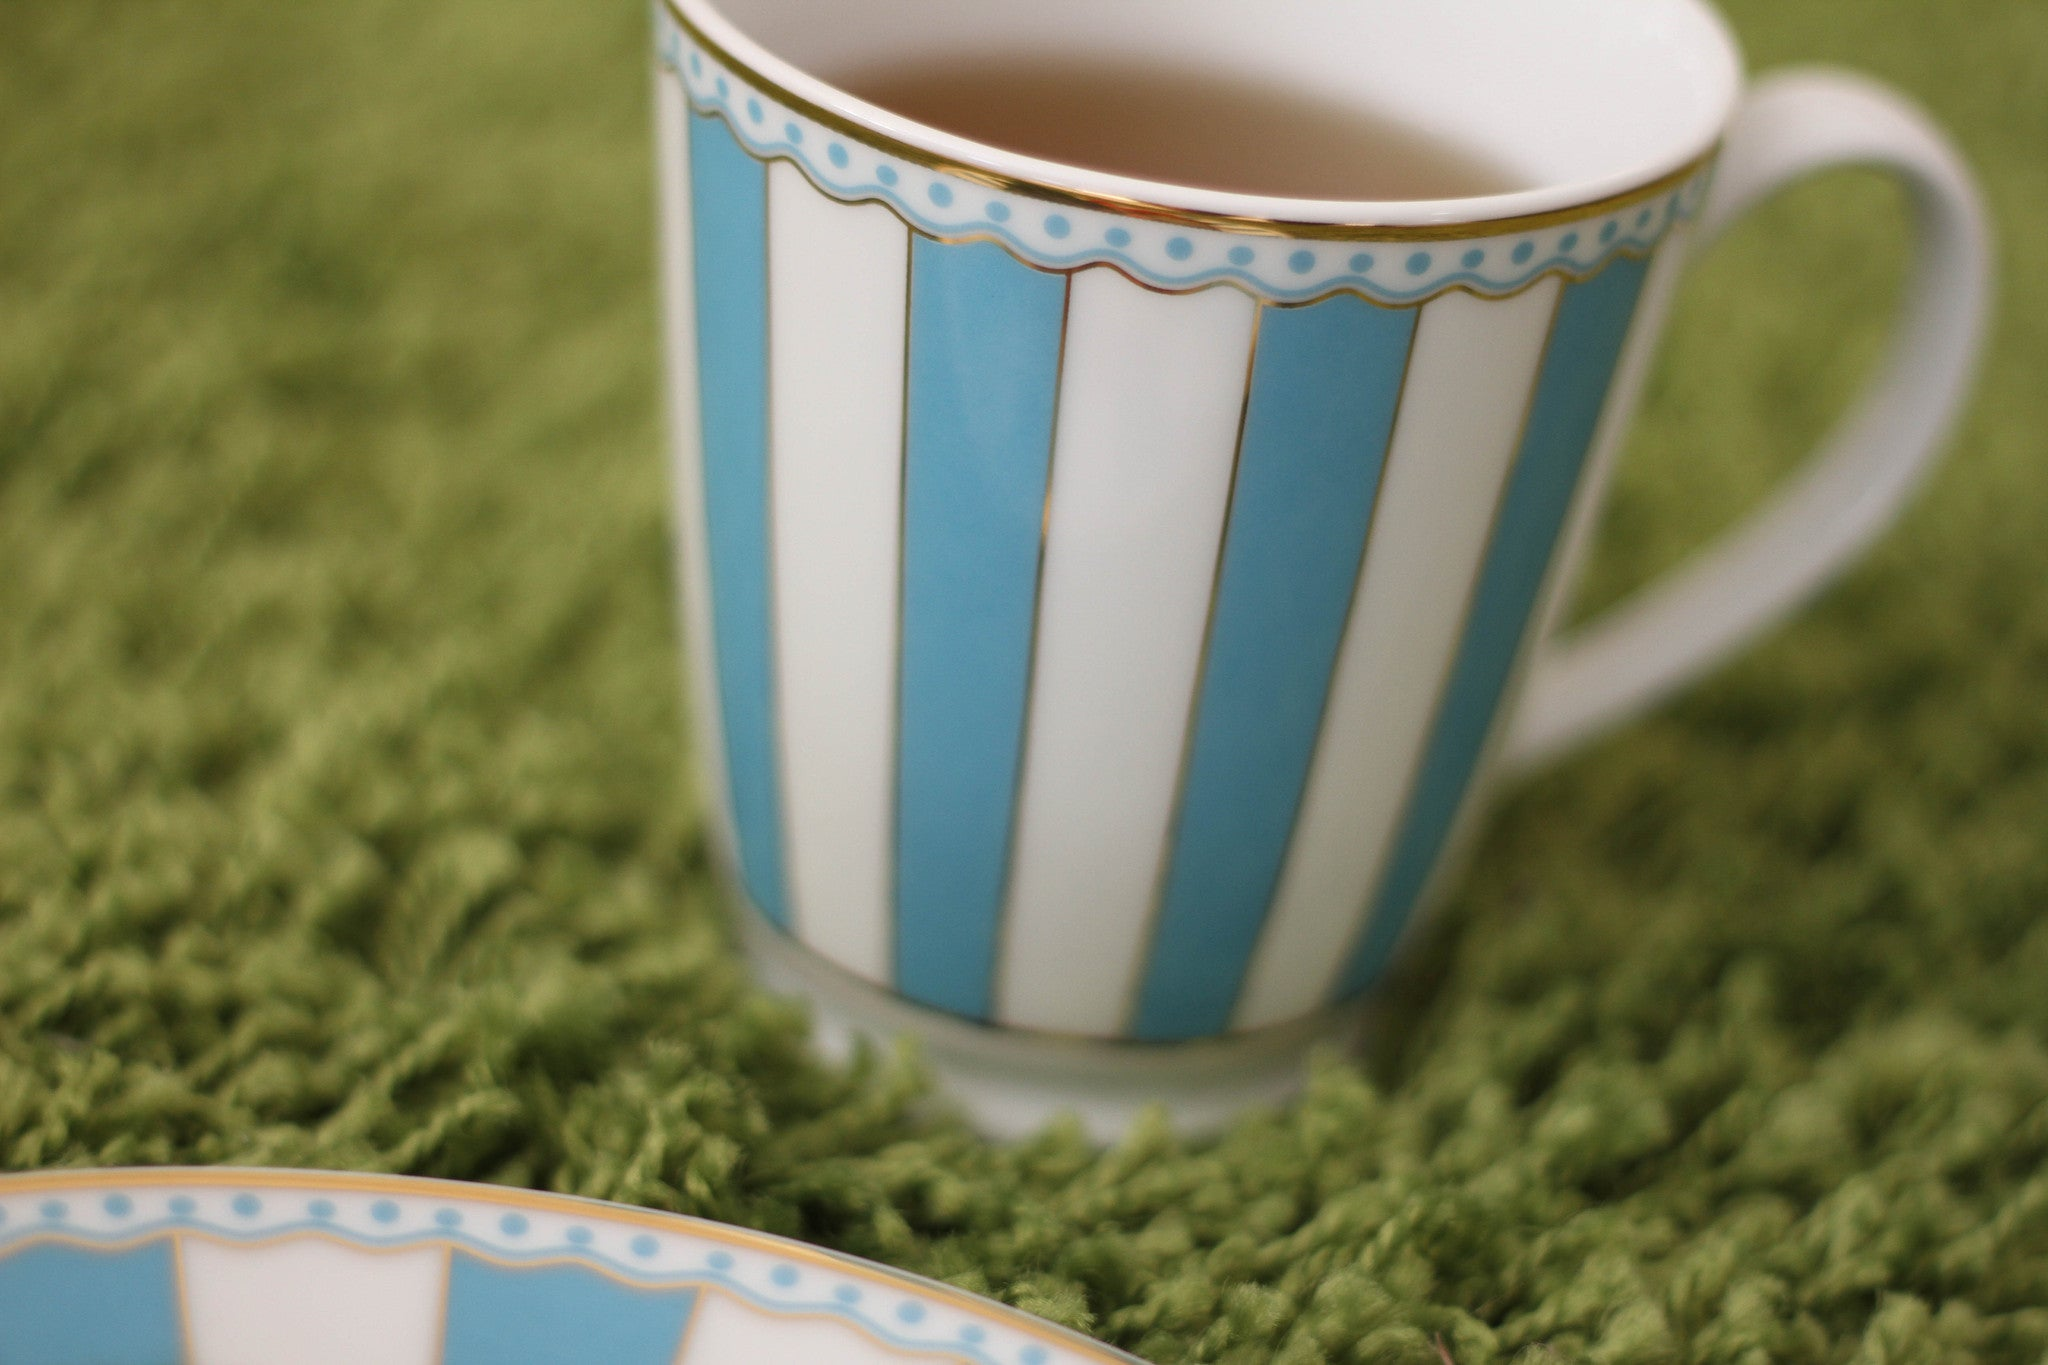 Coffee/tea mug - Noritake light blue & white